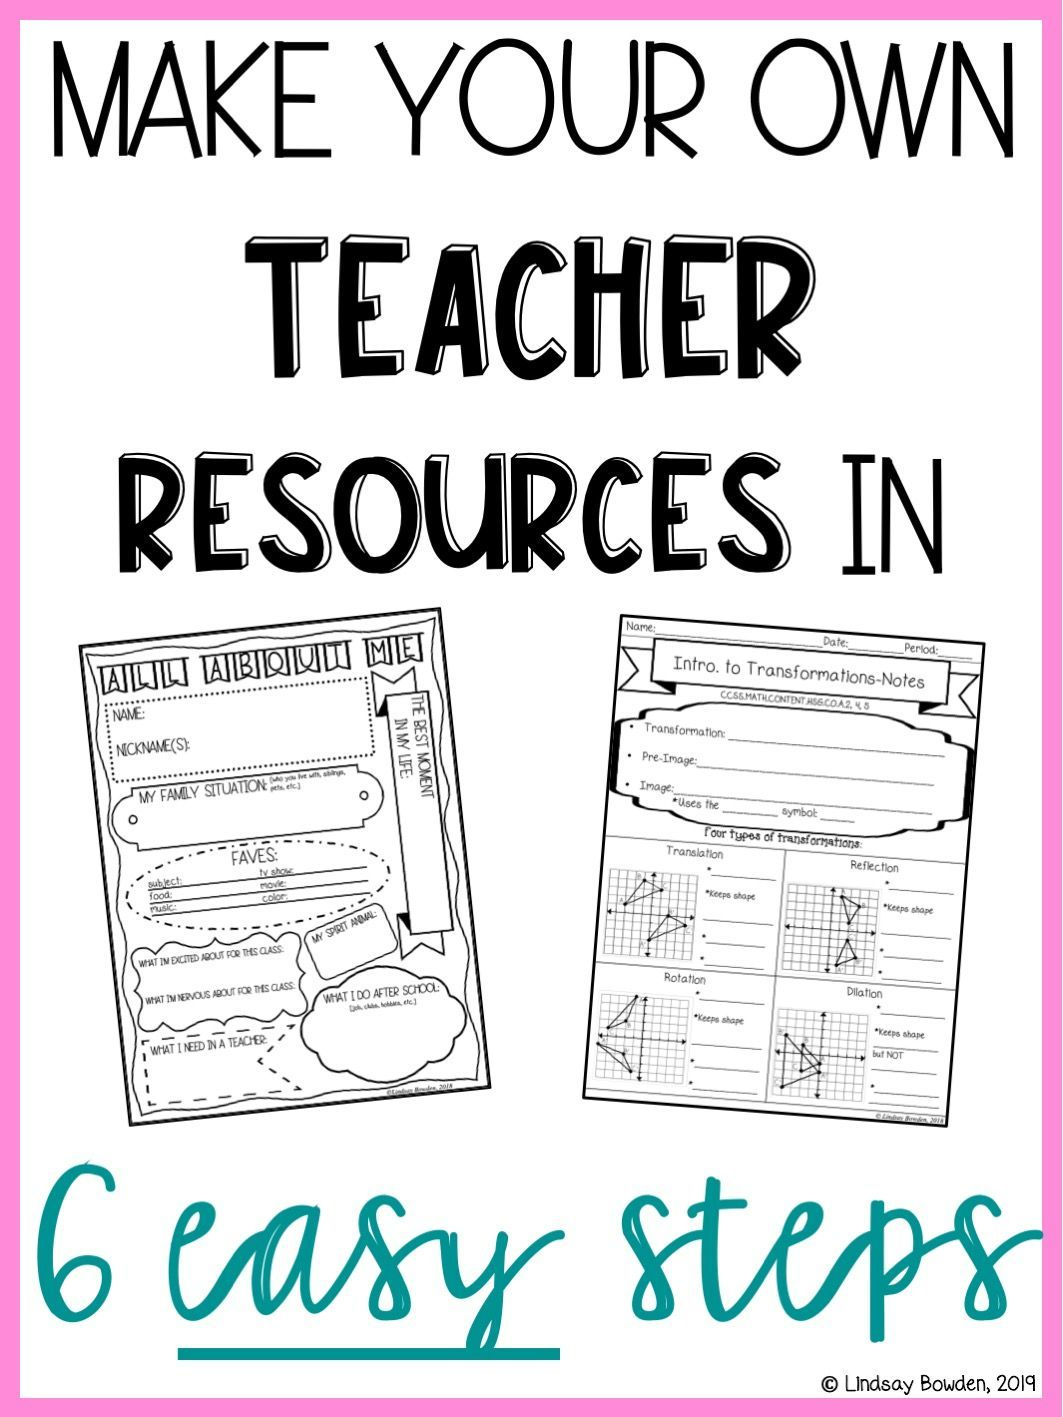 Make Your Own Teacher Resources In 6 Easy Steps Make